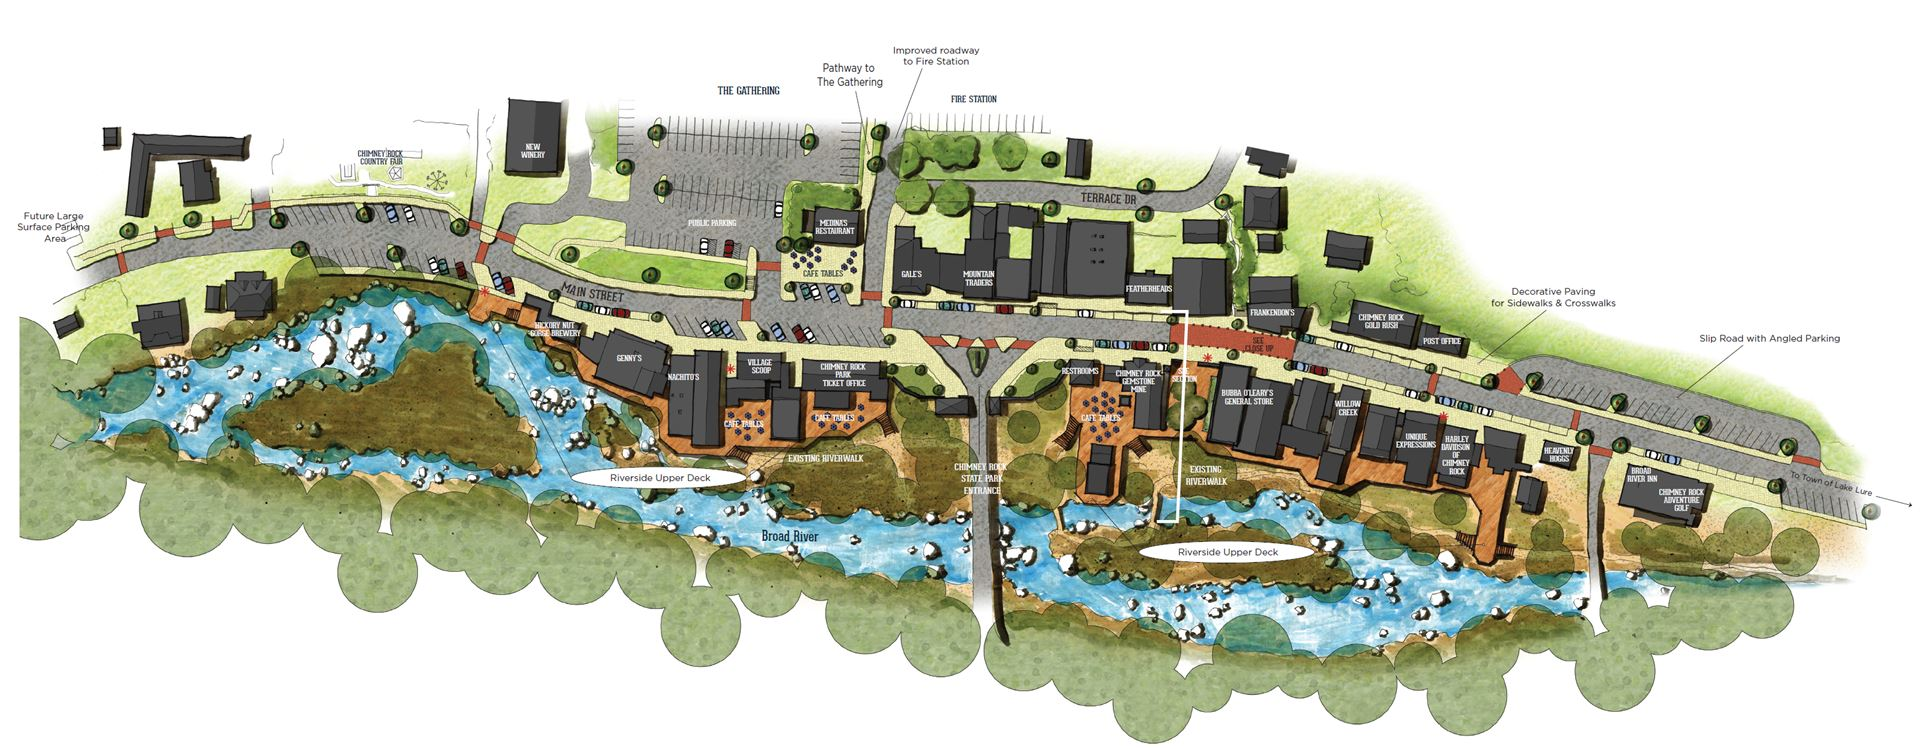 chimney rock village plan